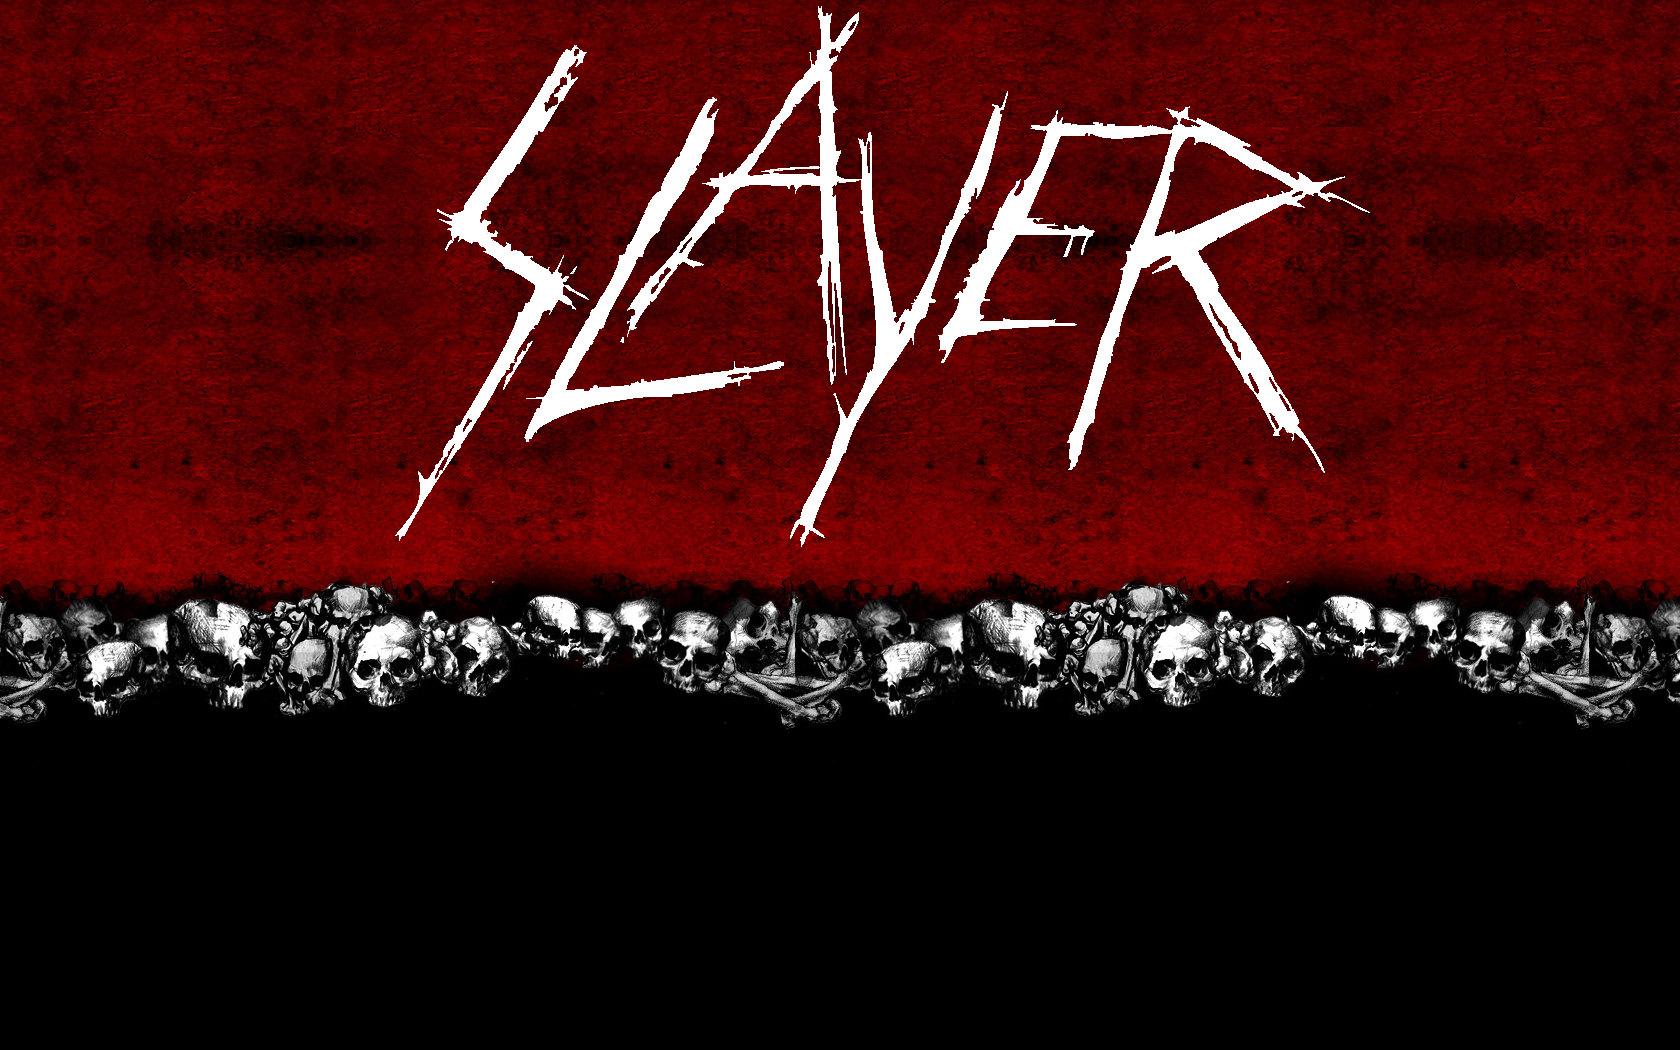 HD Slayer Wallpapers Widescreen, DHM.92